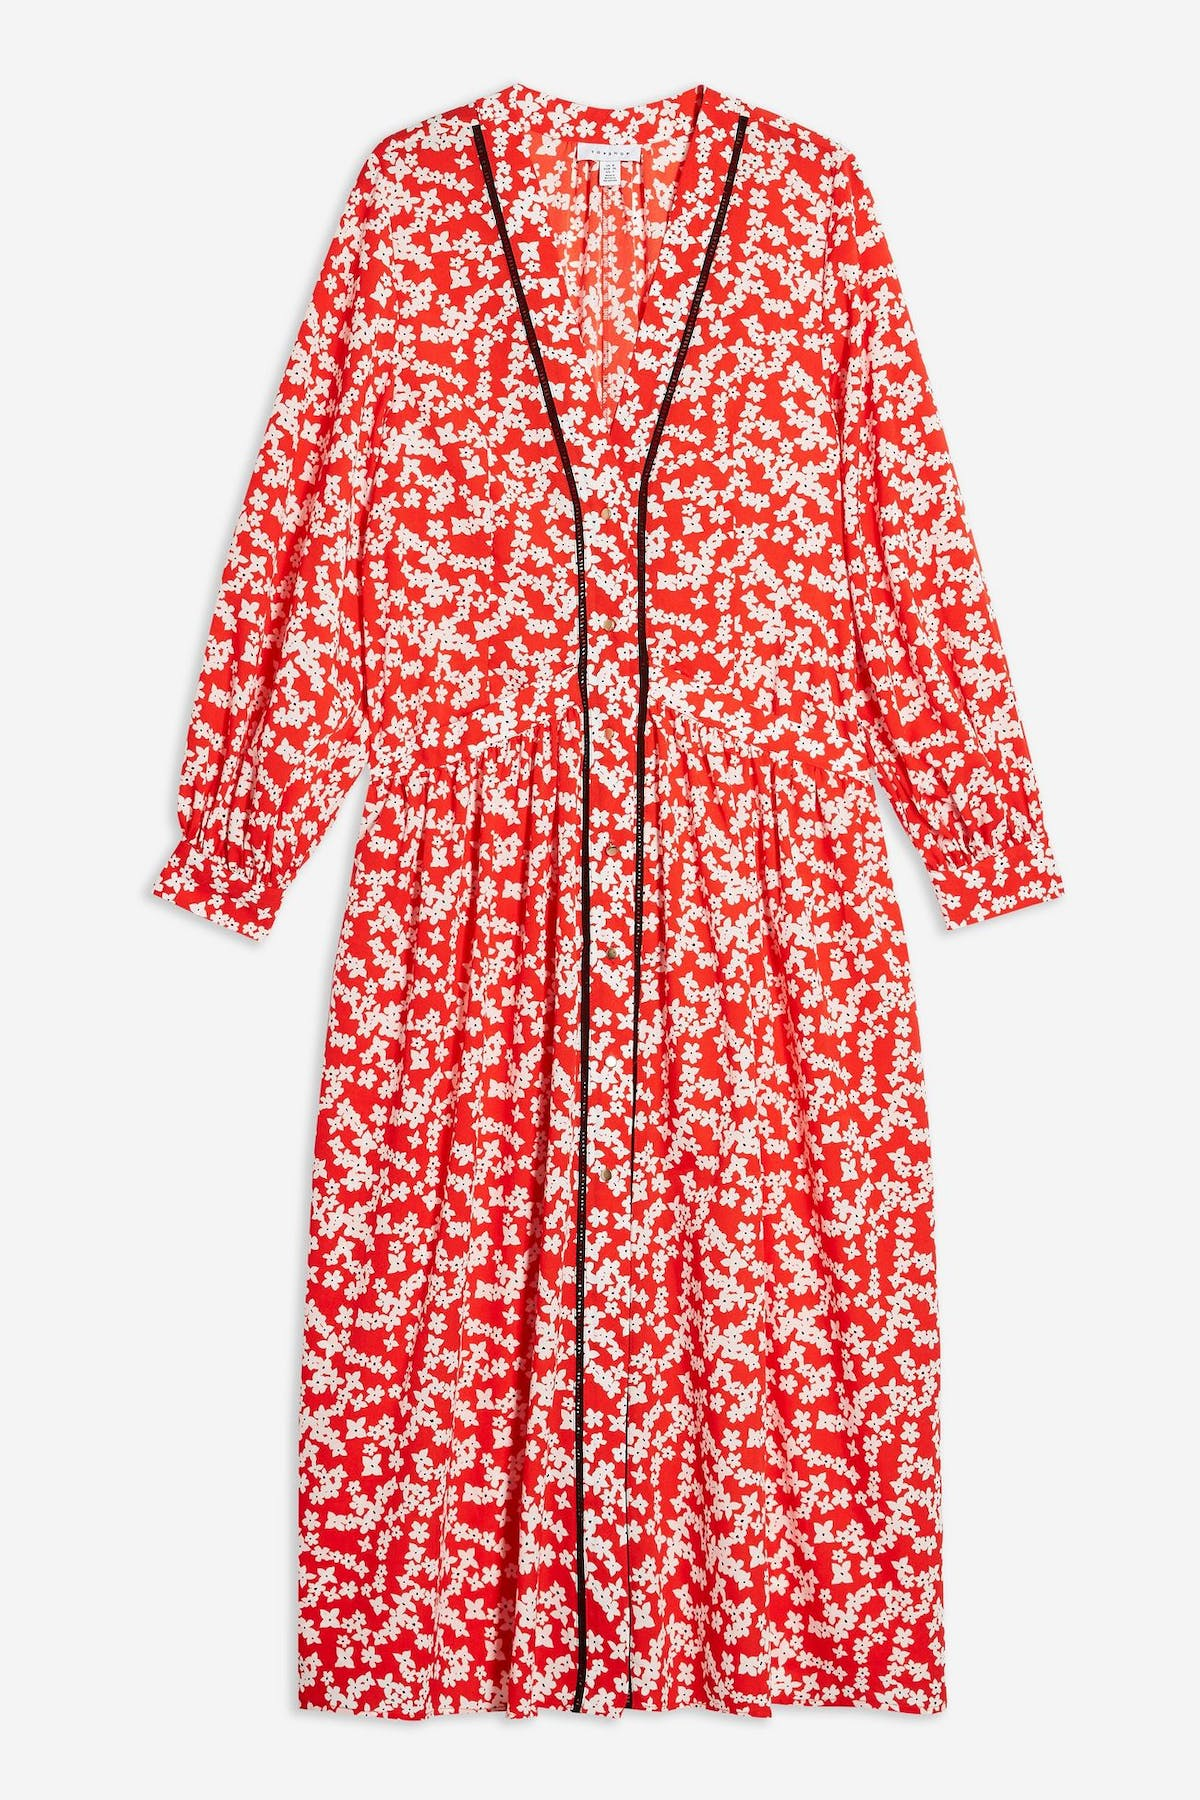 Best Floral Dresses On The High Street Where To Buy